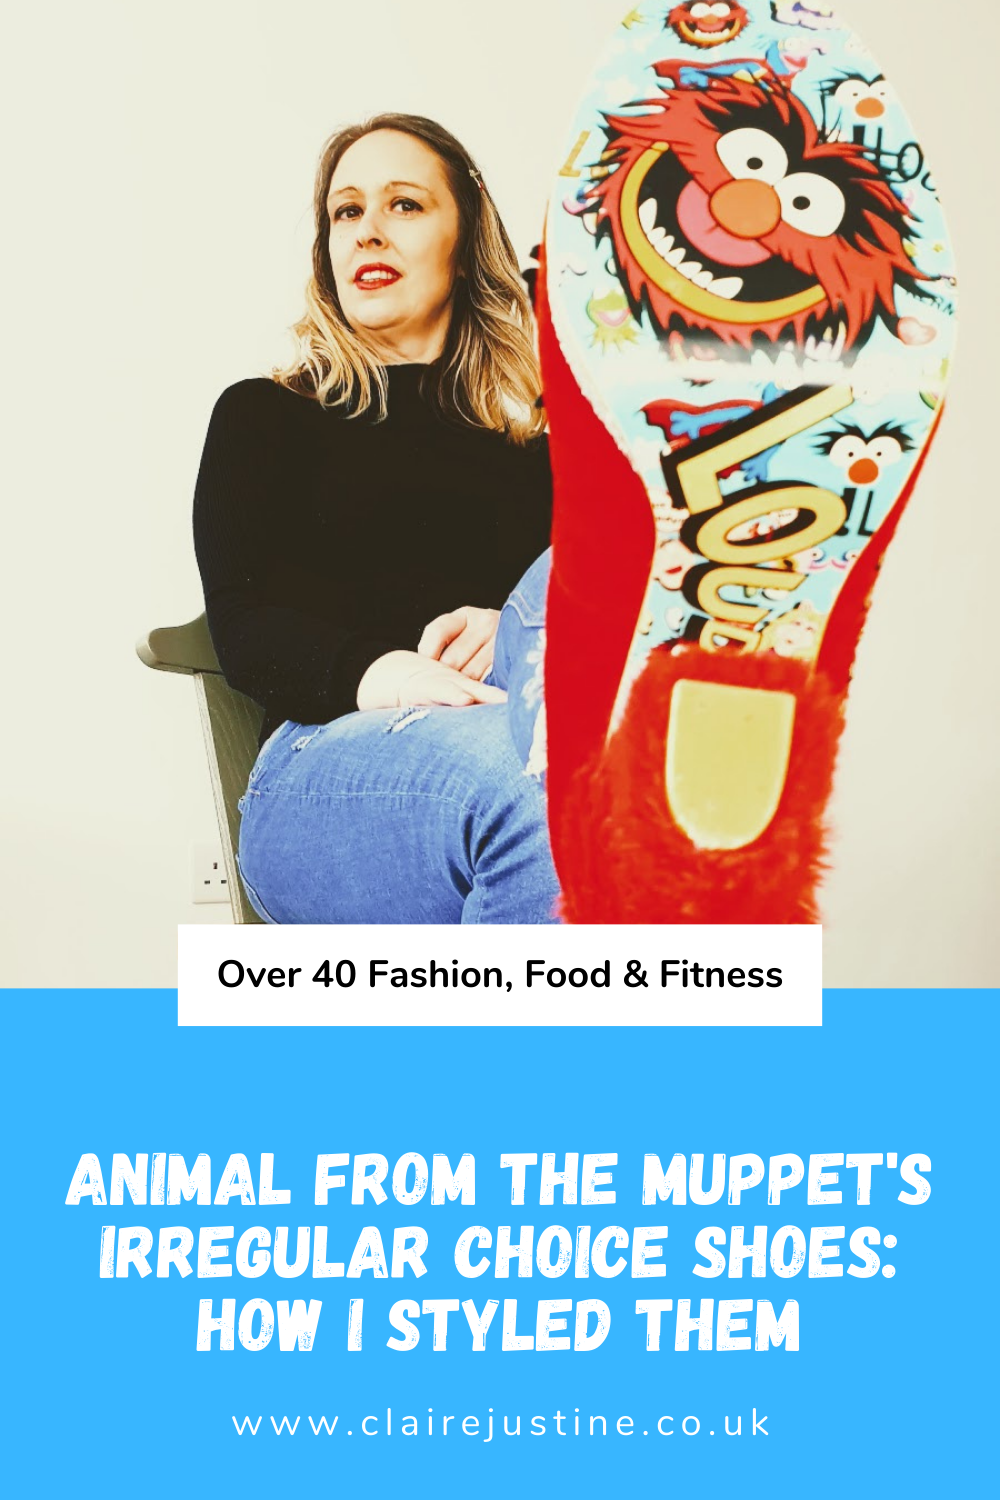 Animal from The Muppet's Irregular Choice Shoes: How I Styled Them.